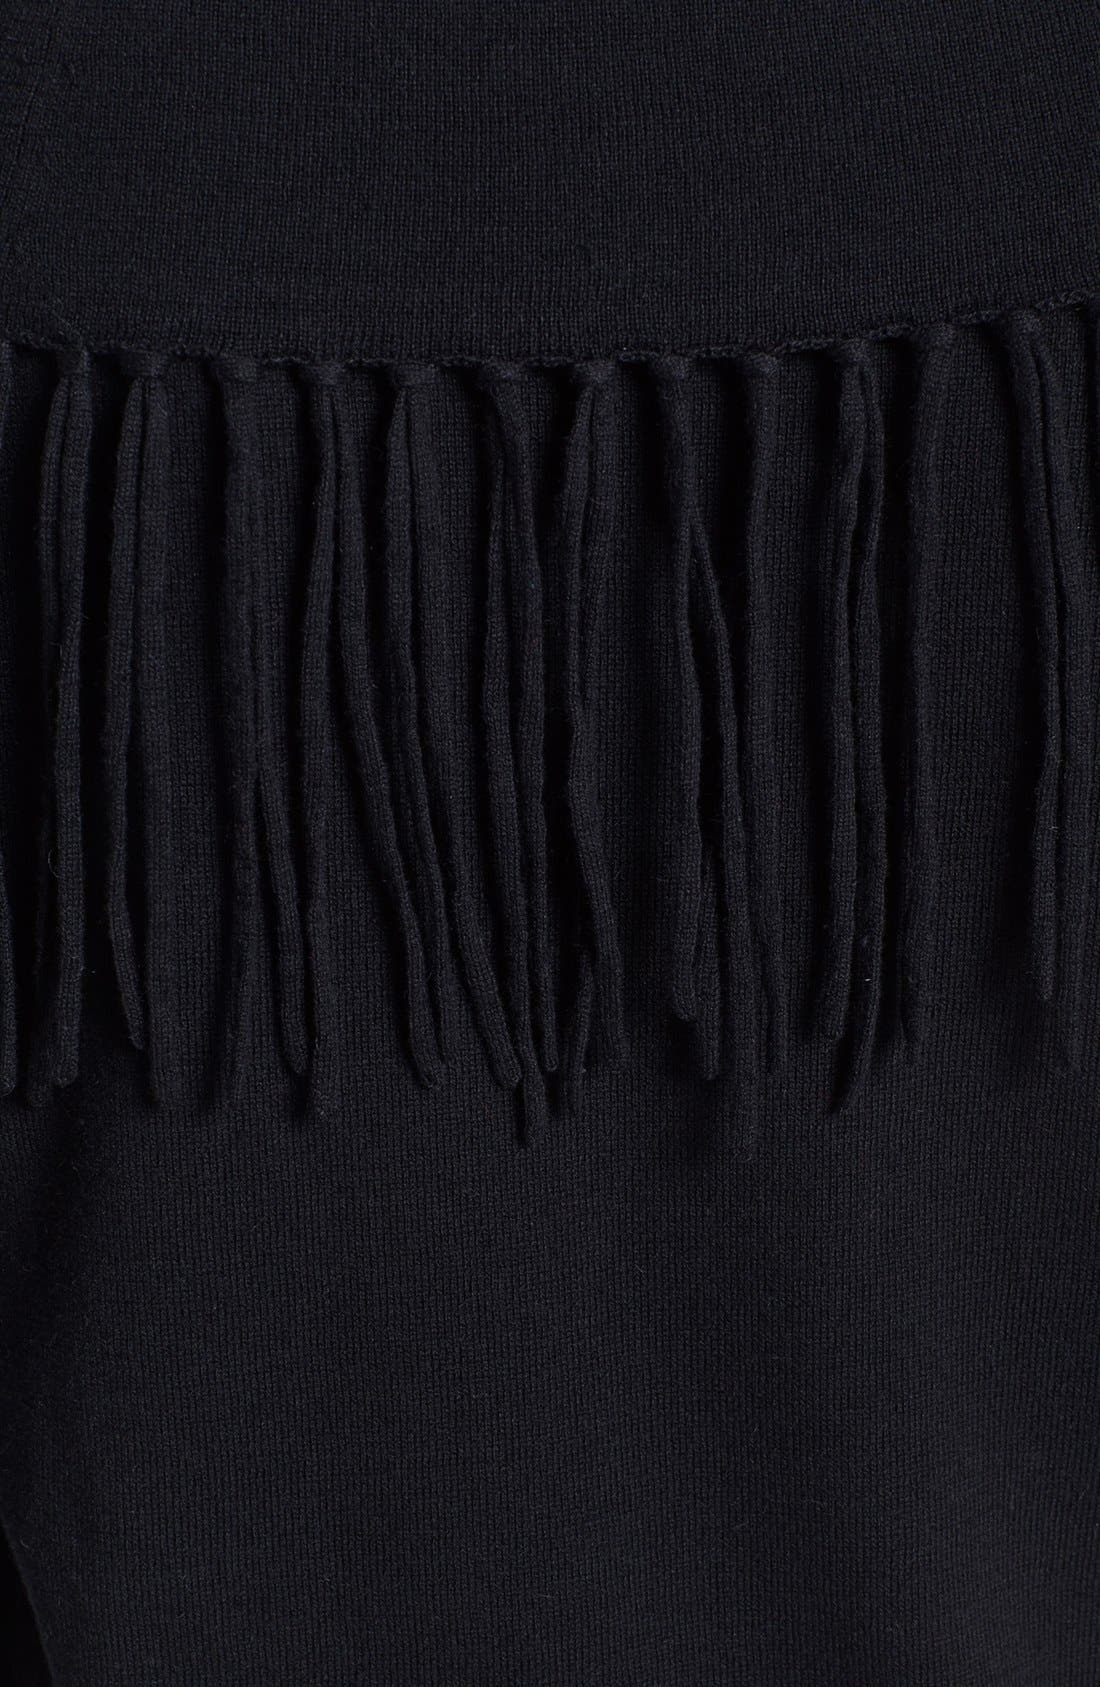 Alternate Image 3  - MICHAEL Michael Kors Fringe Cowl Neck Sweater (Petite)